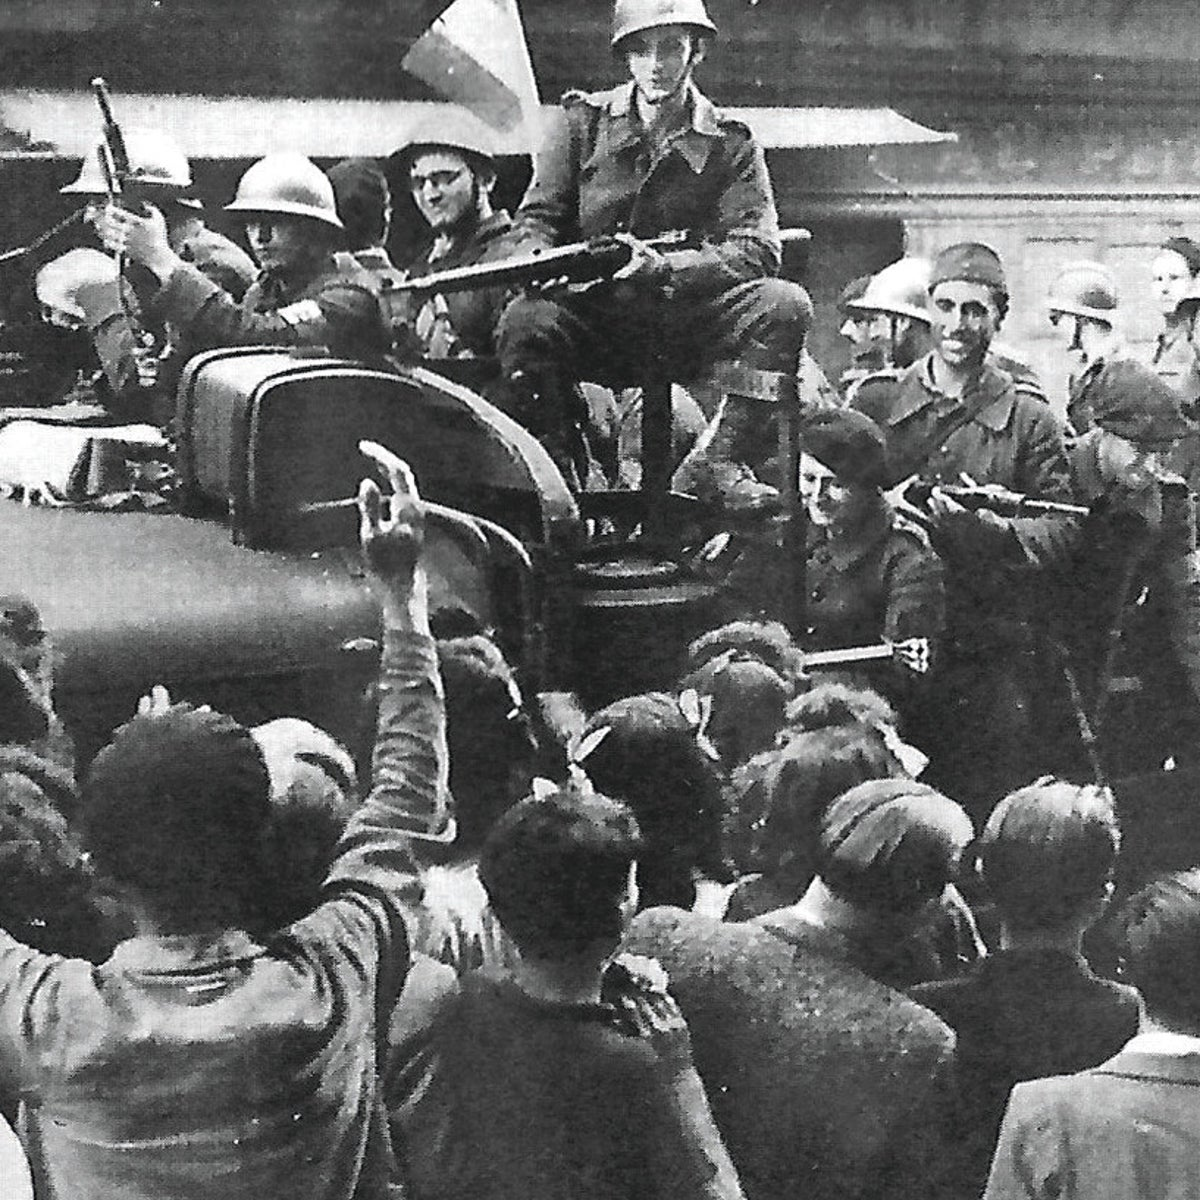 Jewish Scouts, under the leadership of Robert Gamzon, helping to liberate the city of Castres in 1944.